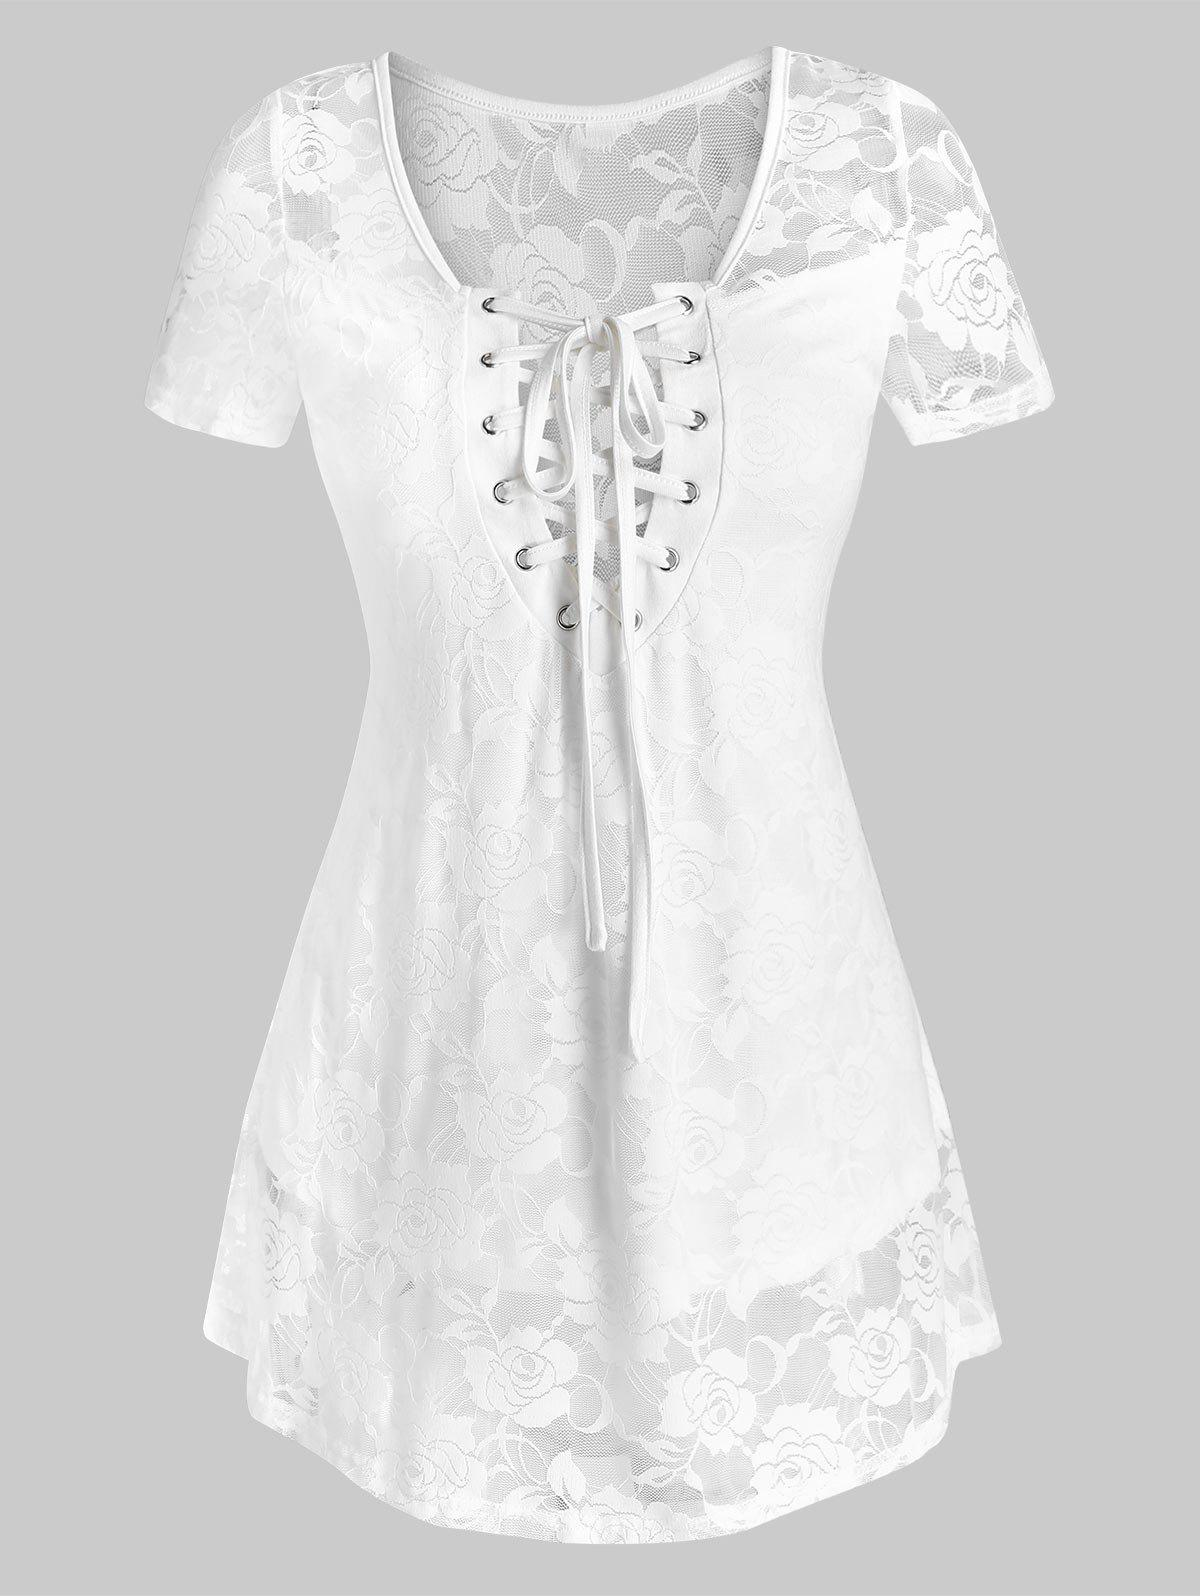 New Lace-up Flower Lace Top